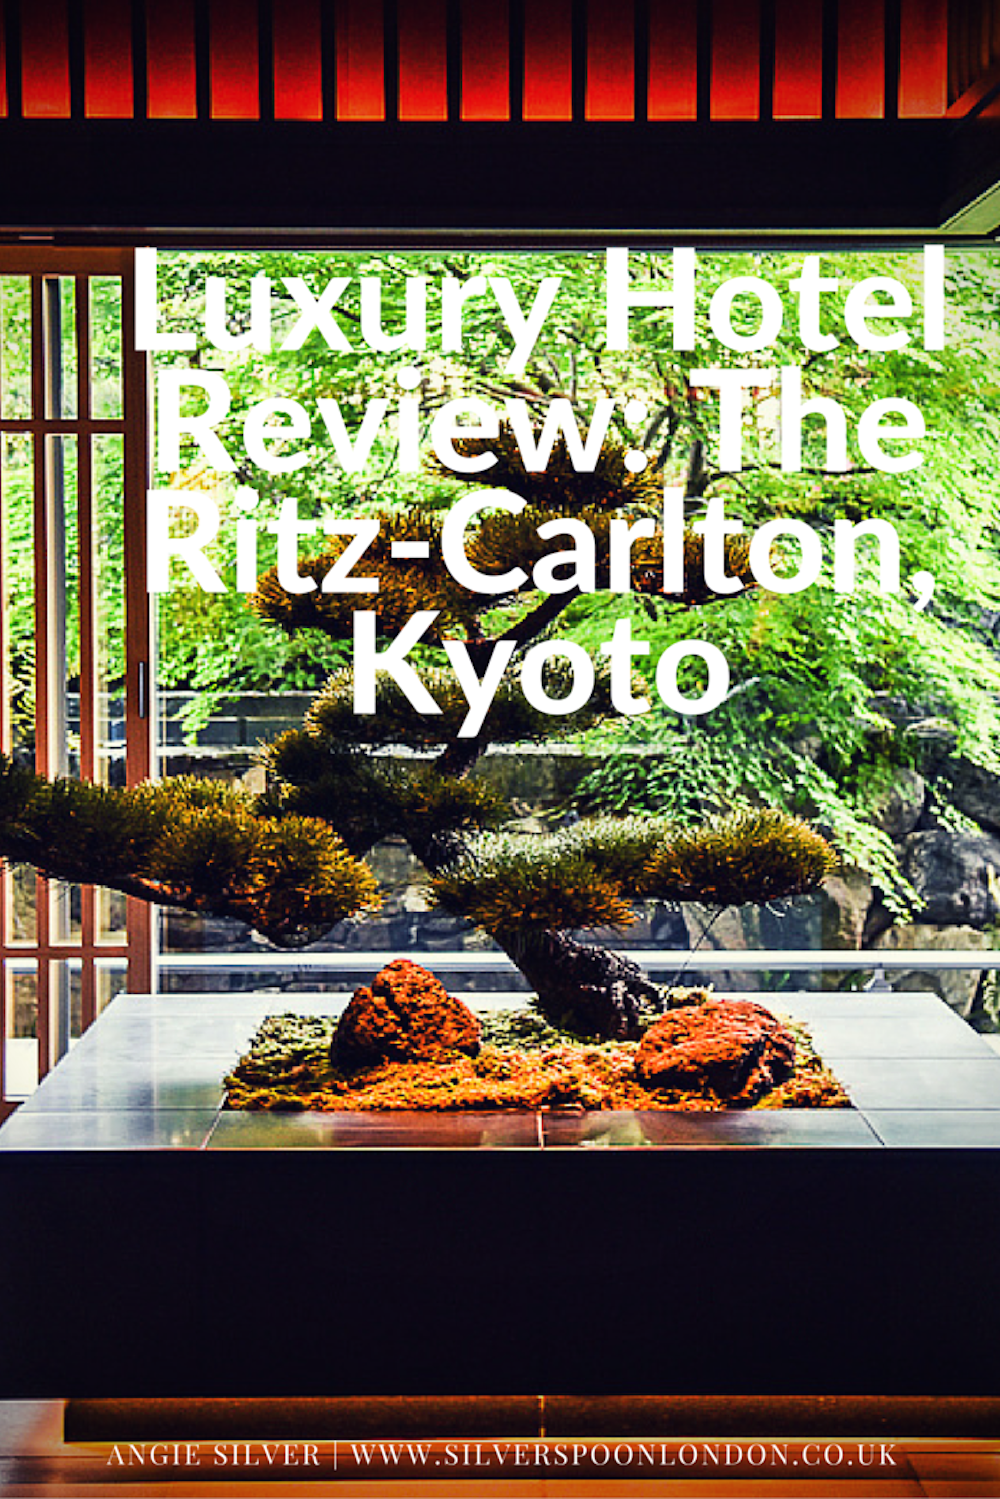 Luxury Hotel Review: The Ritz Carlton Kyoto